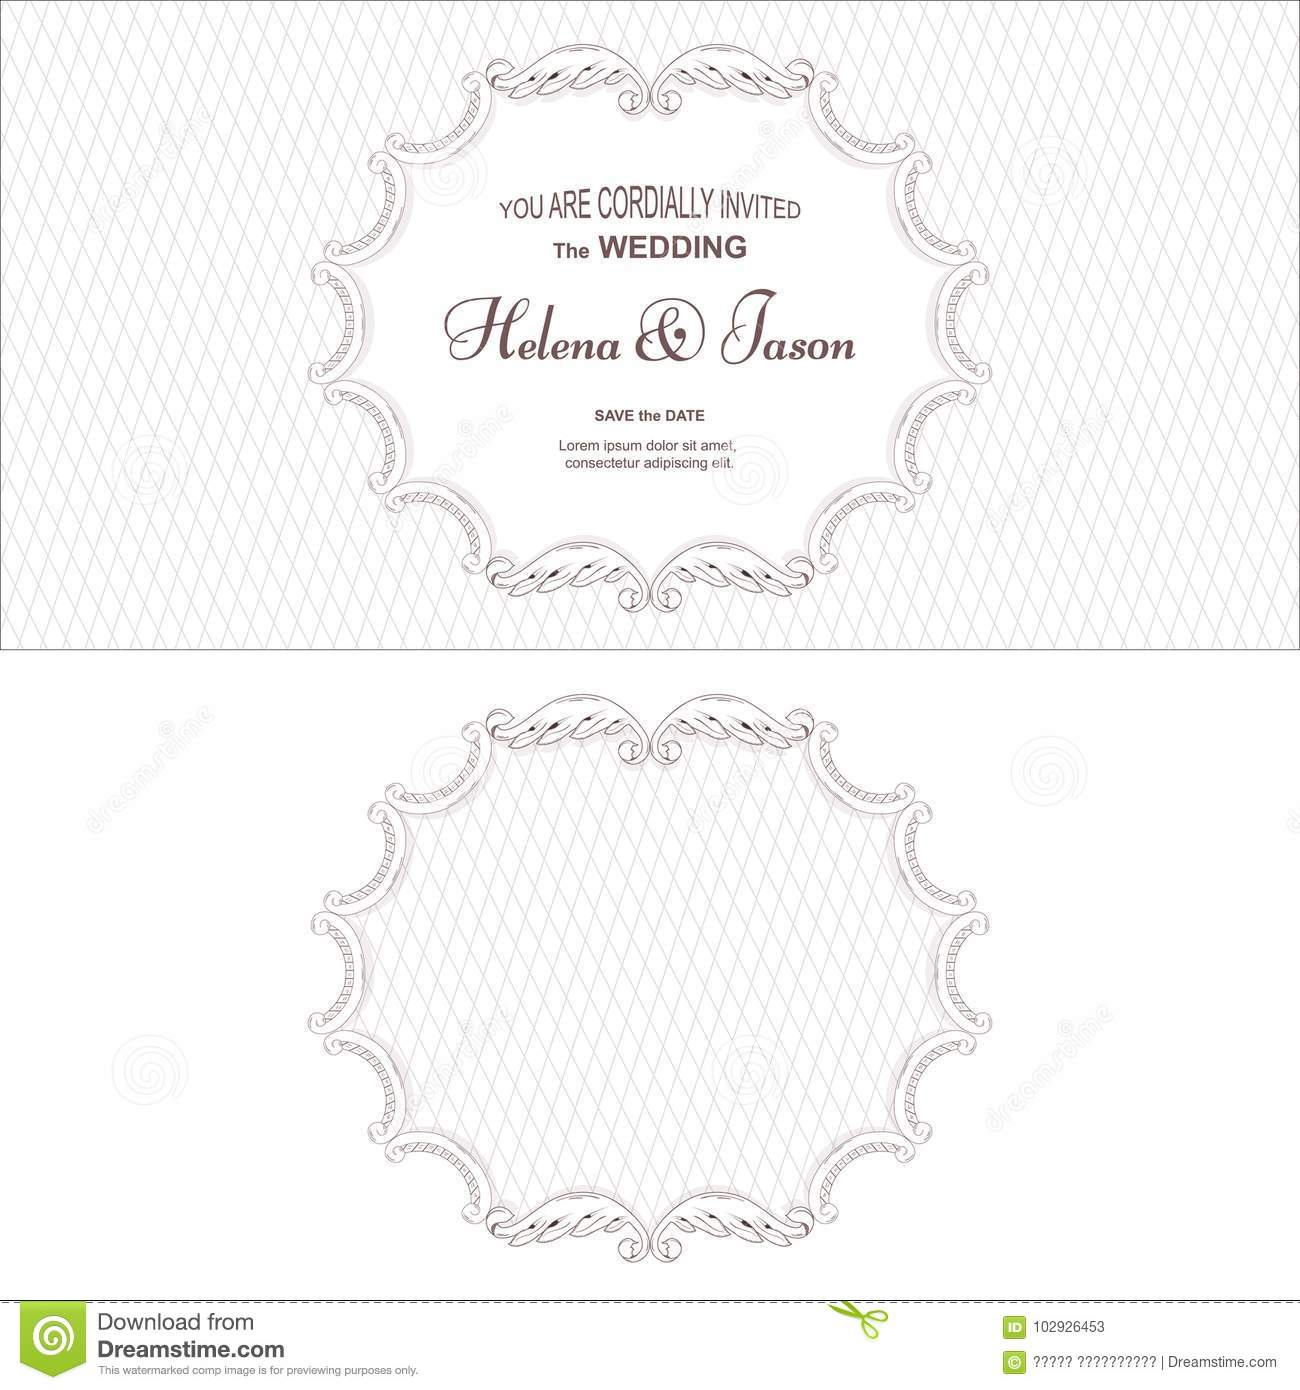 Elegant Wedding Frame In Two Versions Executed In A Victorian Style